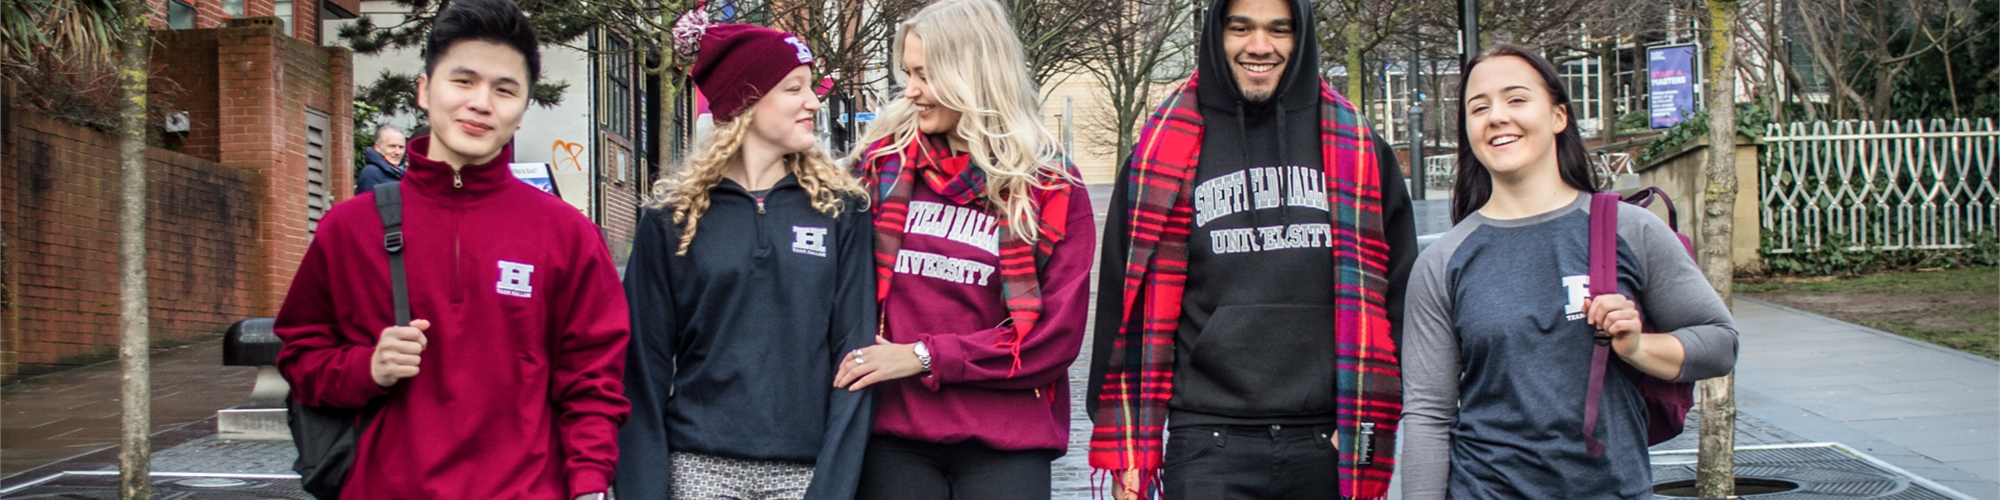 Get your branded Sheffield Hallam clothing, tickets and accessories at the click of a button